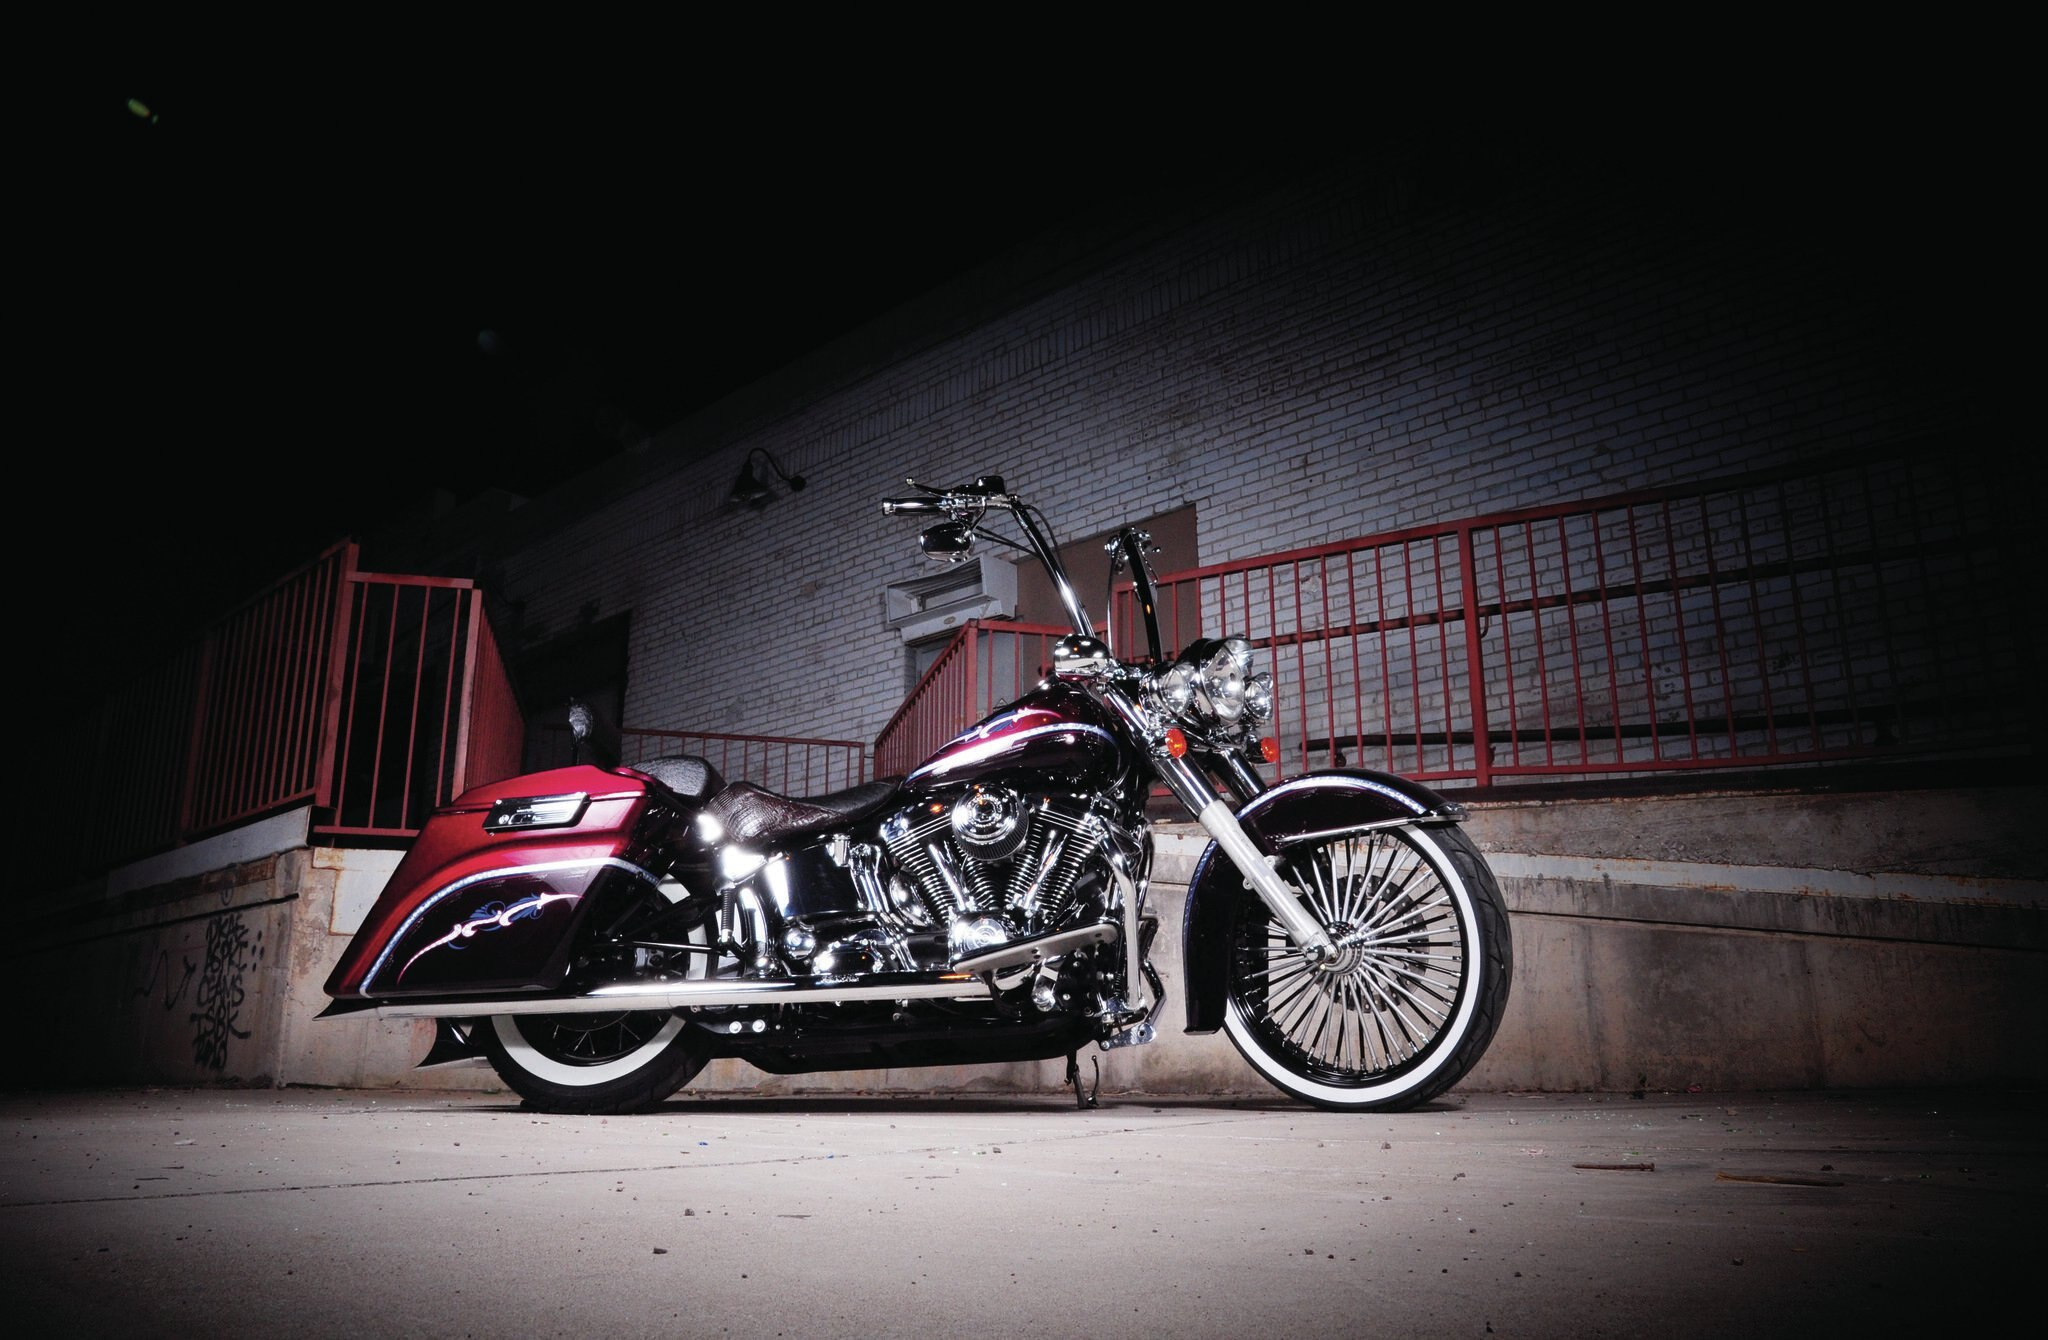 2005-harley-davidson-softail-side-view-011